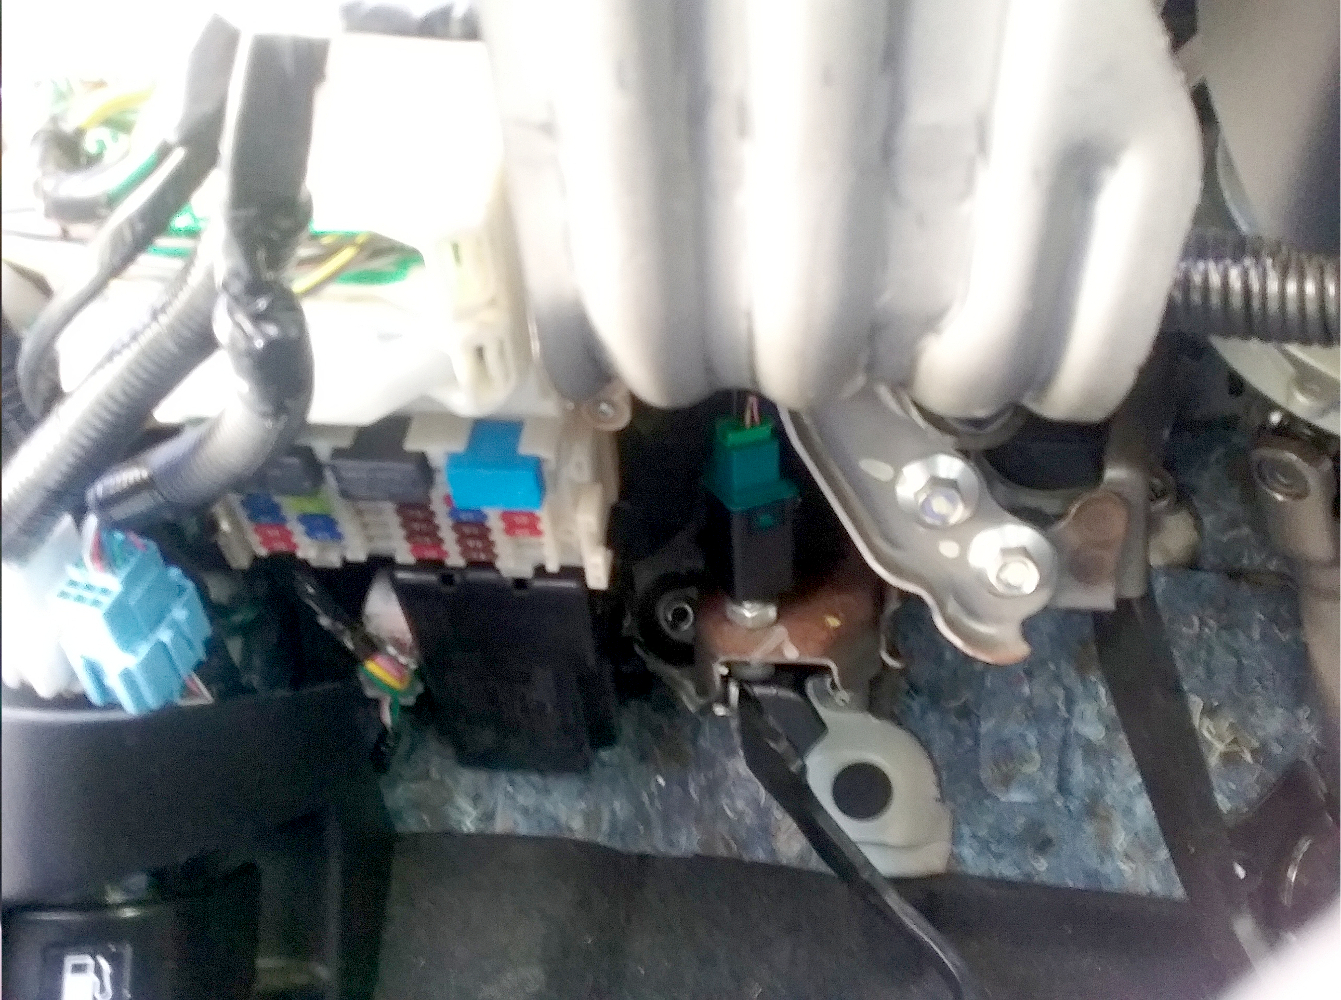 Honda Fit 2016, Replace the clutch interlock switch, which is behind the green clutch pedal position switch  (black rectangle piece). Photo 6 by Don Tai